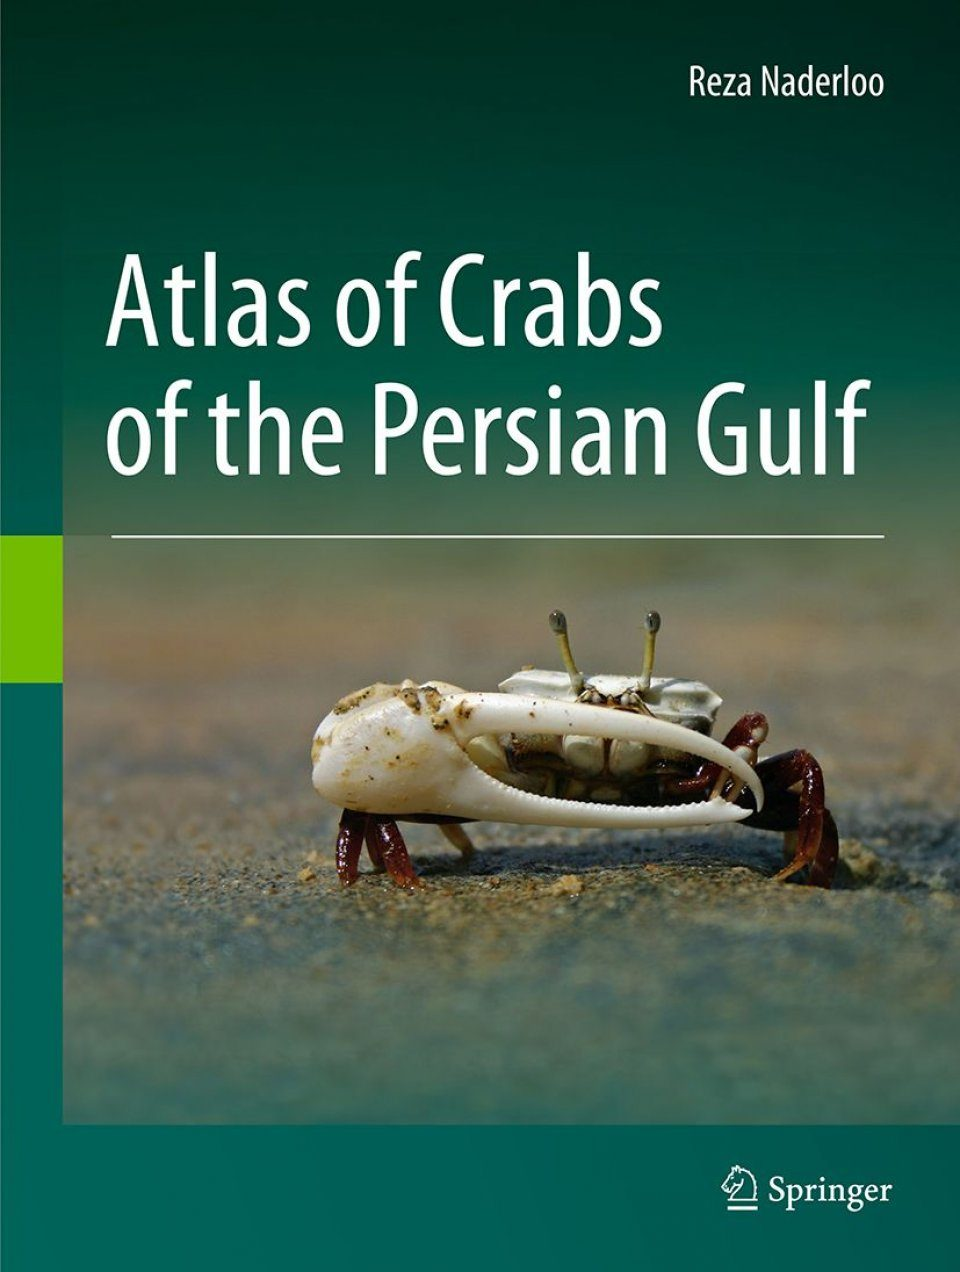 Atlas of Crabs of the Persian Gulf